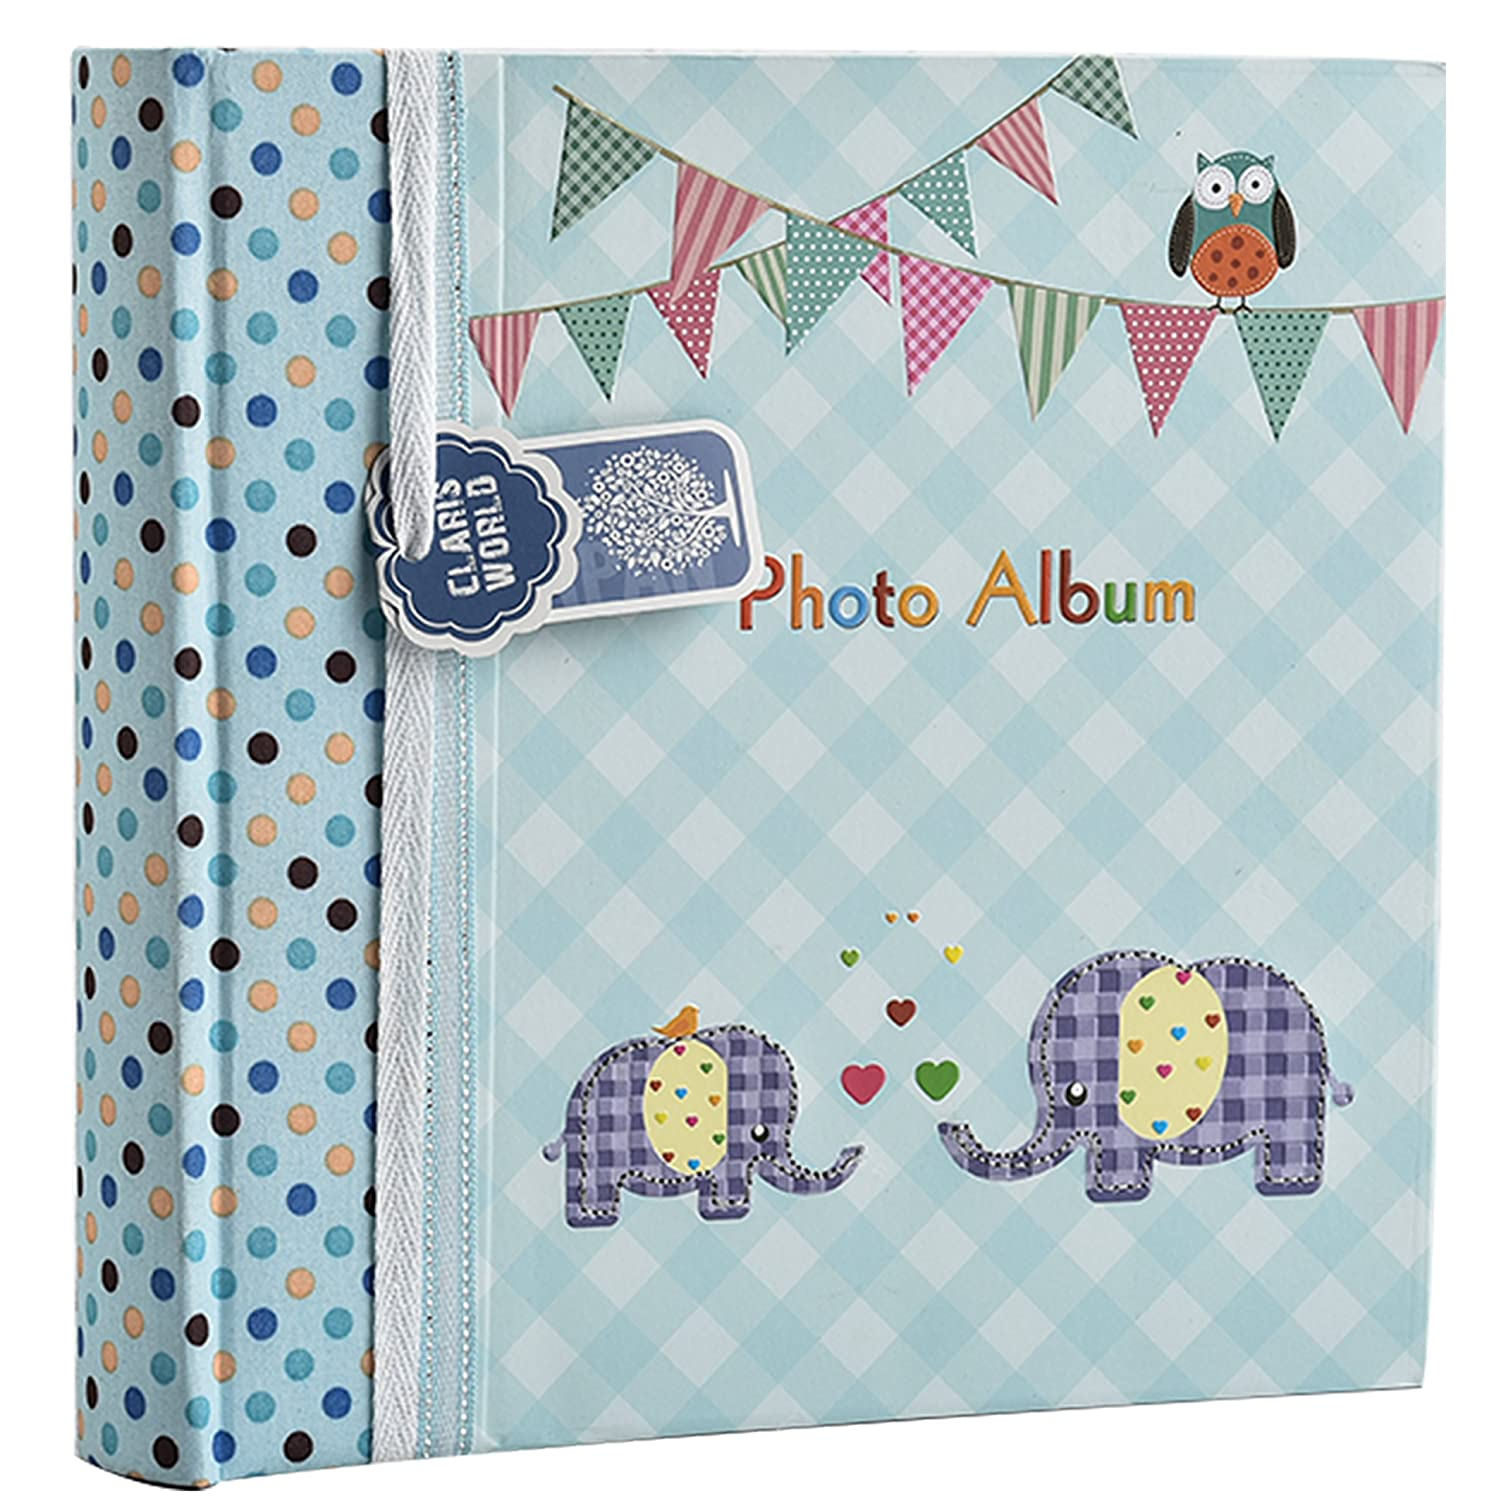 Arpan Large Baby Boy Blue Memo Slip In Photo Album 200 6x4'' Photos - Elephant Kids -Ideal Gift BA-9851